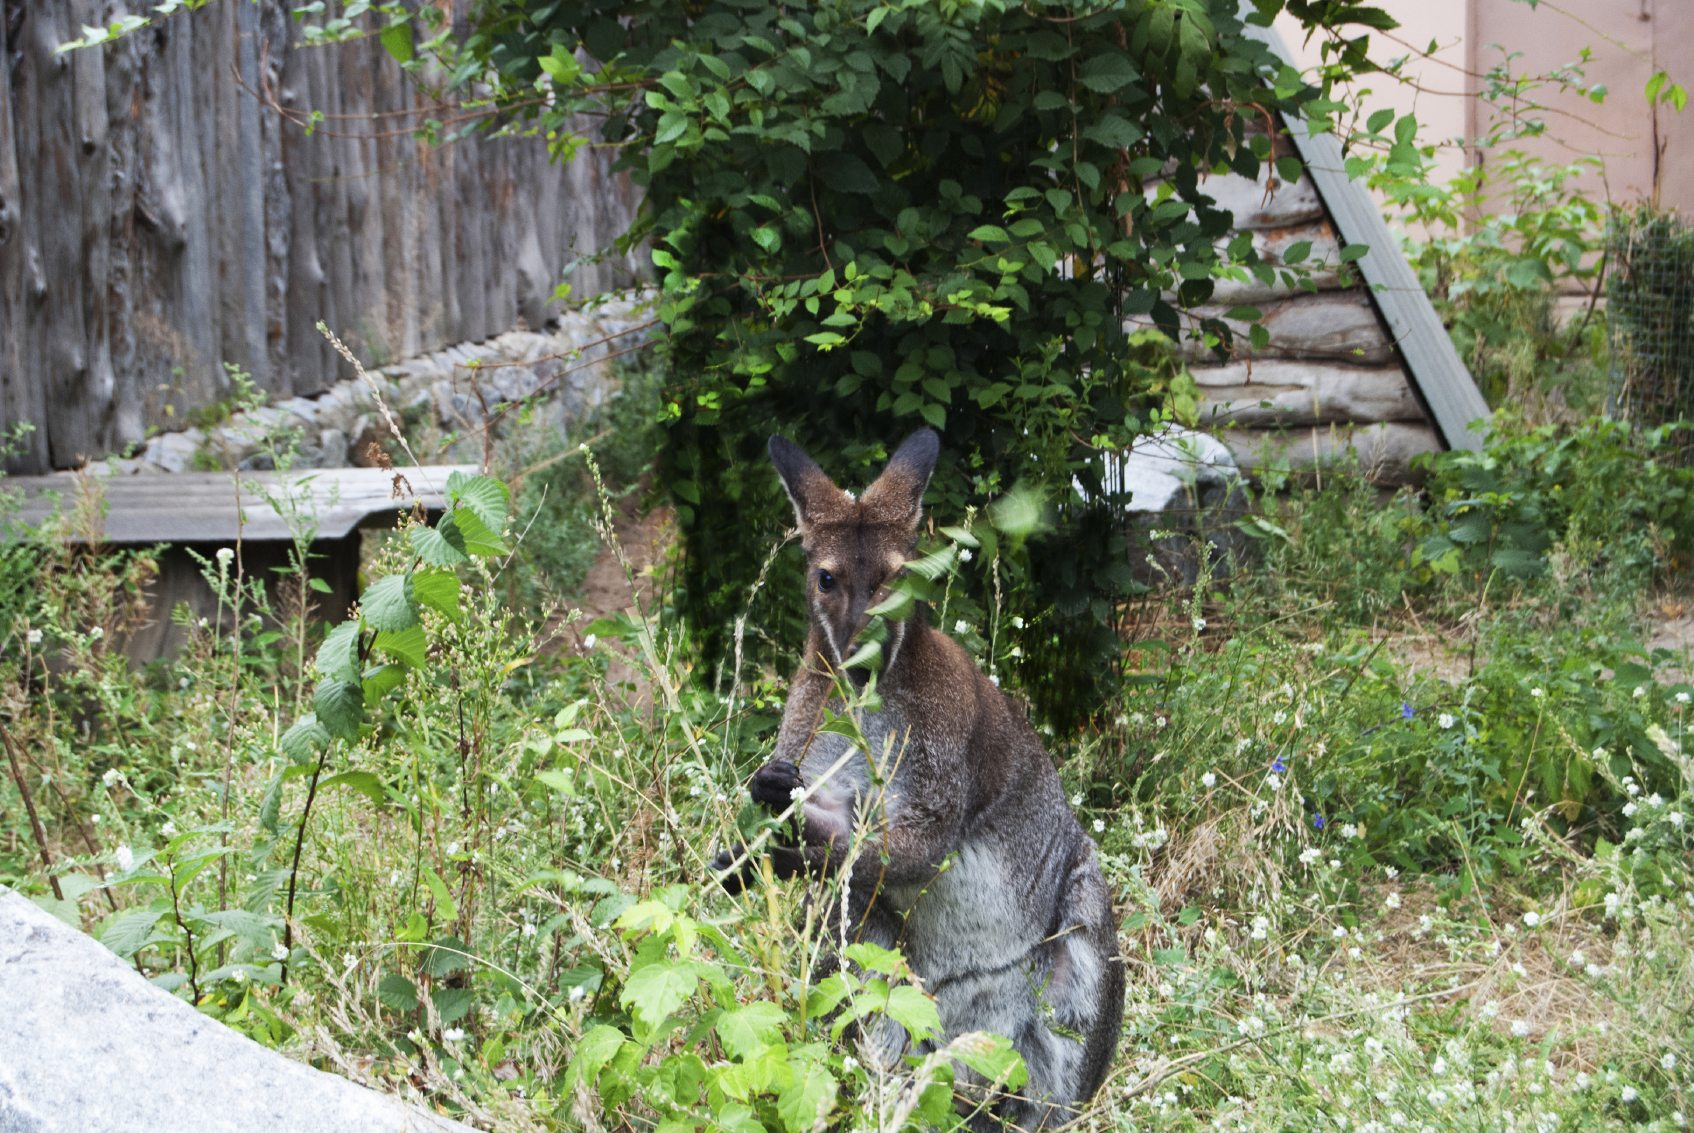 Tips on how to keep kangaroos away learn about plants kangaroos don t eat - Garden ideas to keep animals out ...